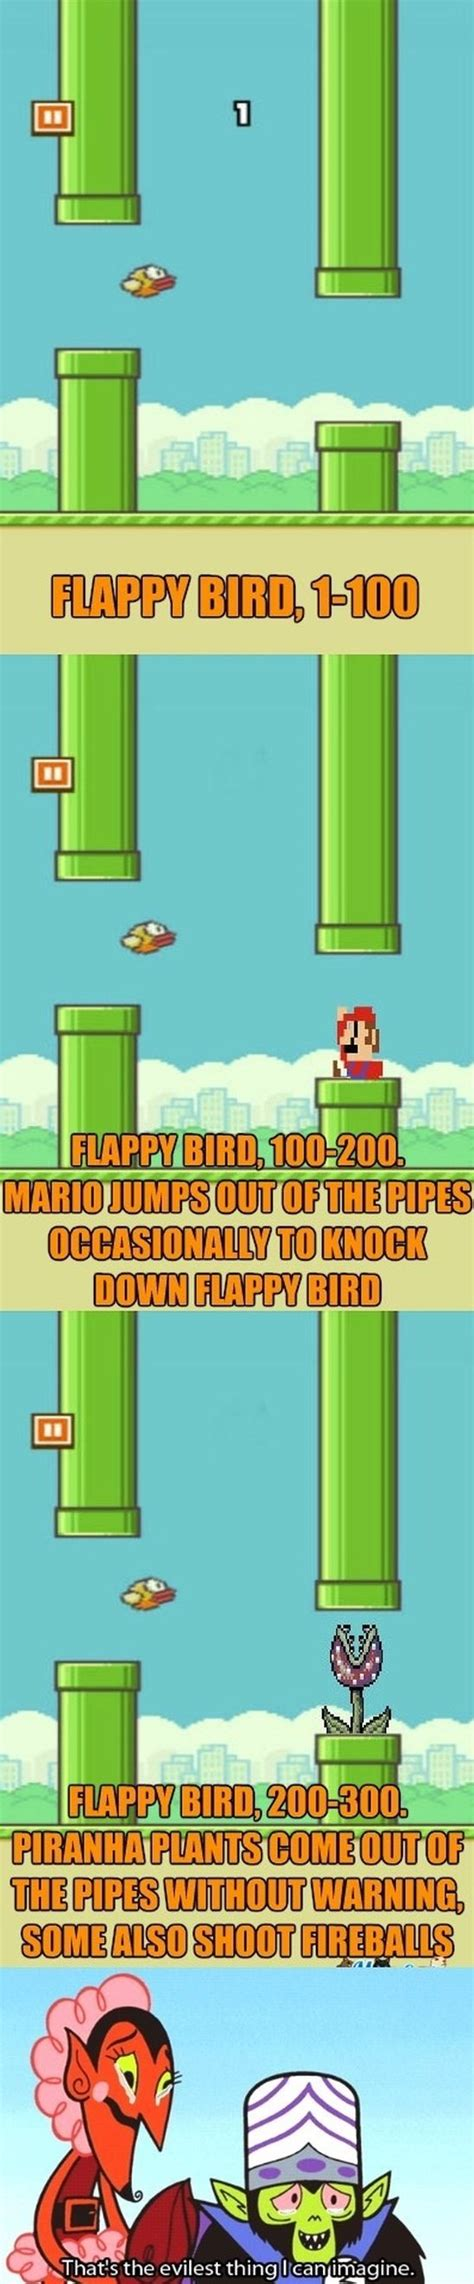 Flappy Bird Meme - flappy bird jpg